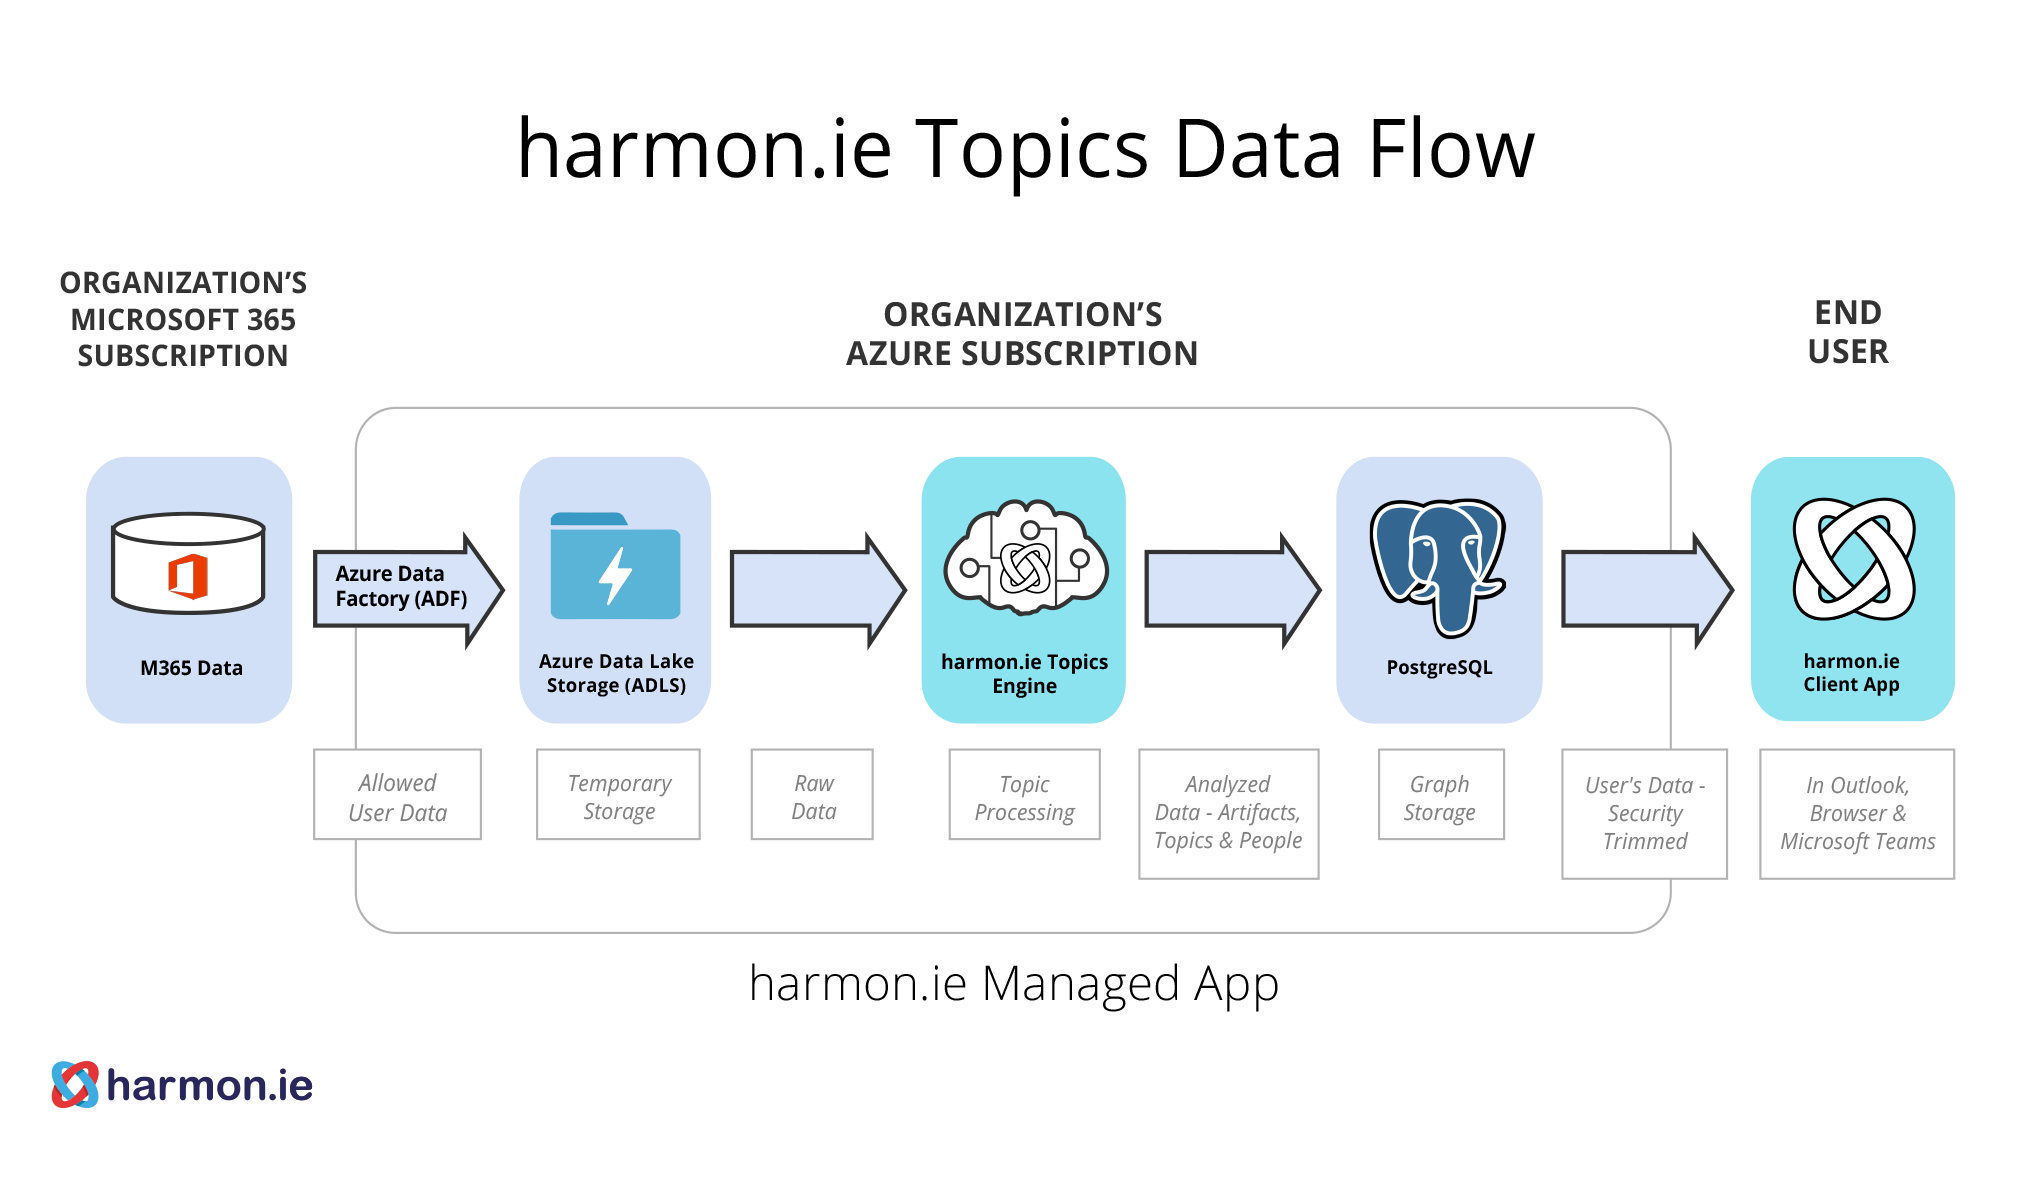 harmon ie Topics Deployment Guide